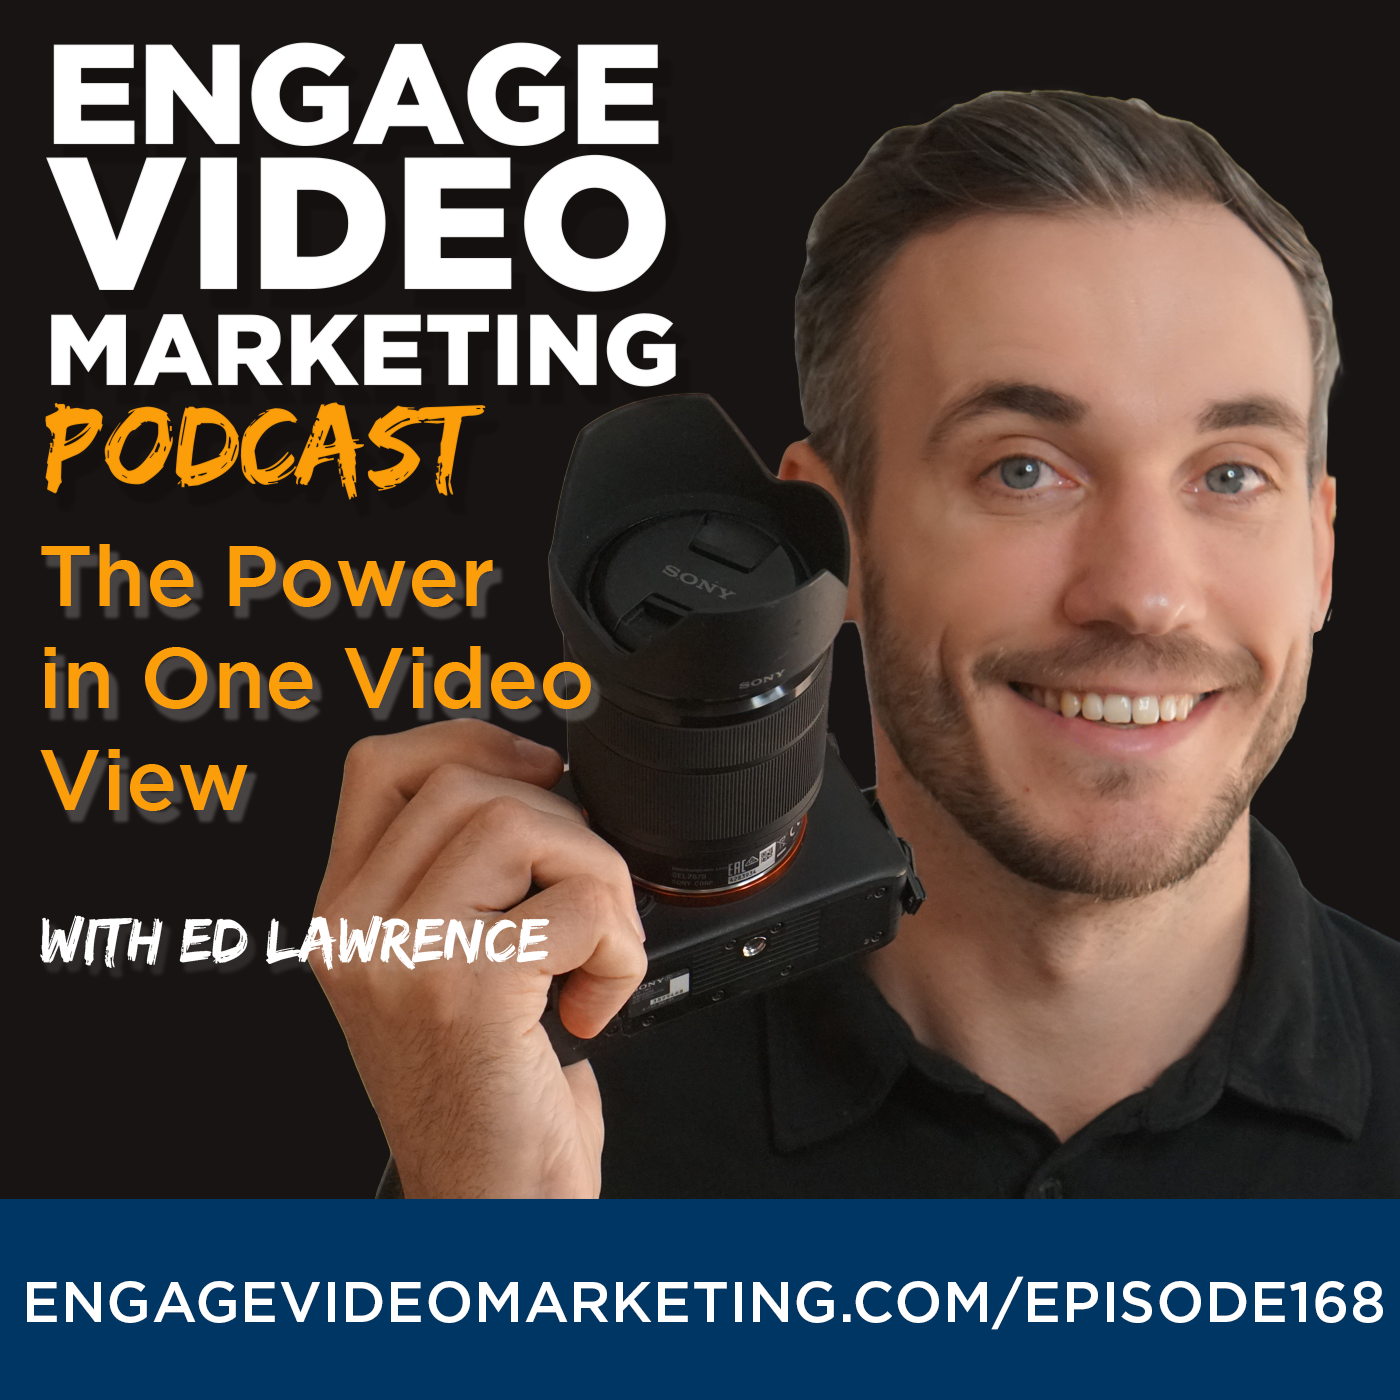 The Power in One Video View with Ed Lawrence